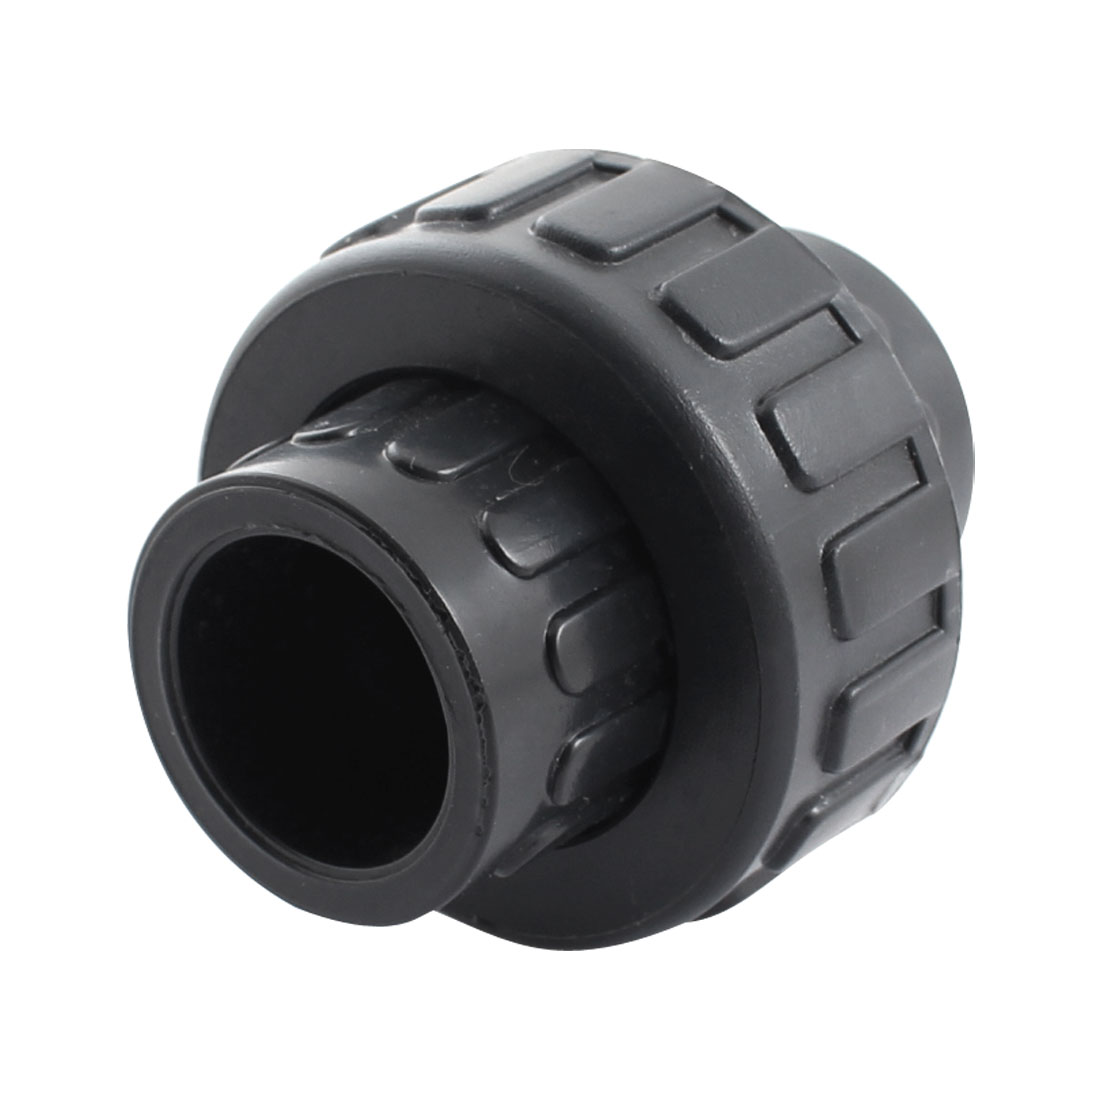 25mm Dia Detachable Black PVC Drainage Water Pipe Hose Coupling Adapter Connector Quick Fitting